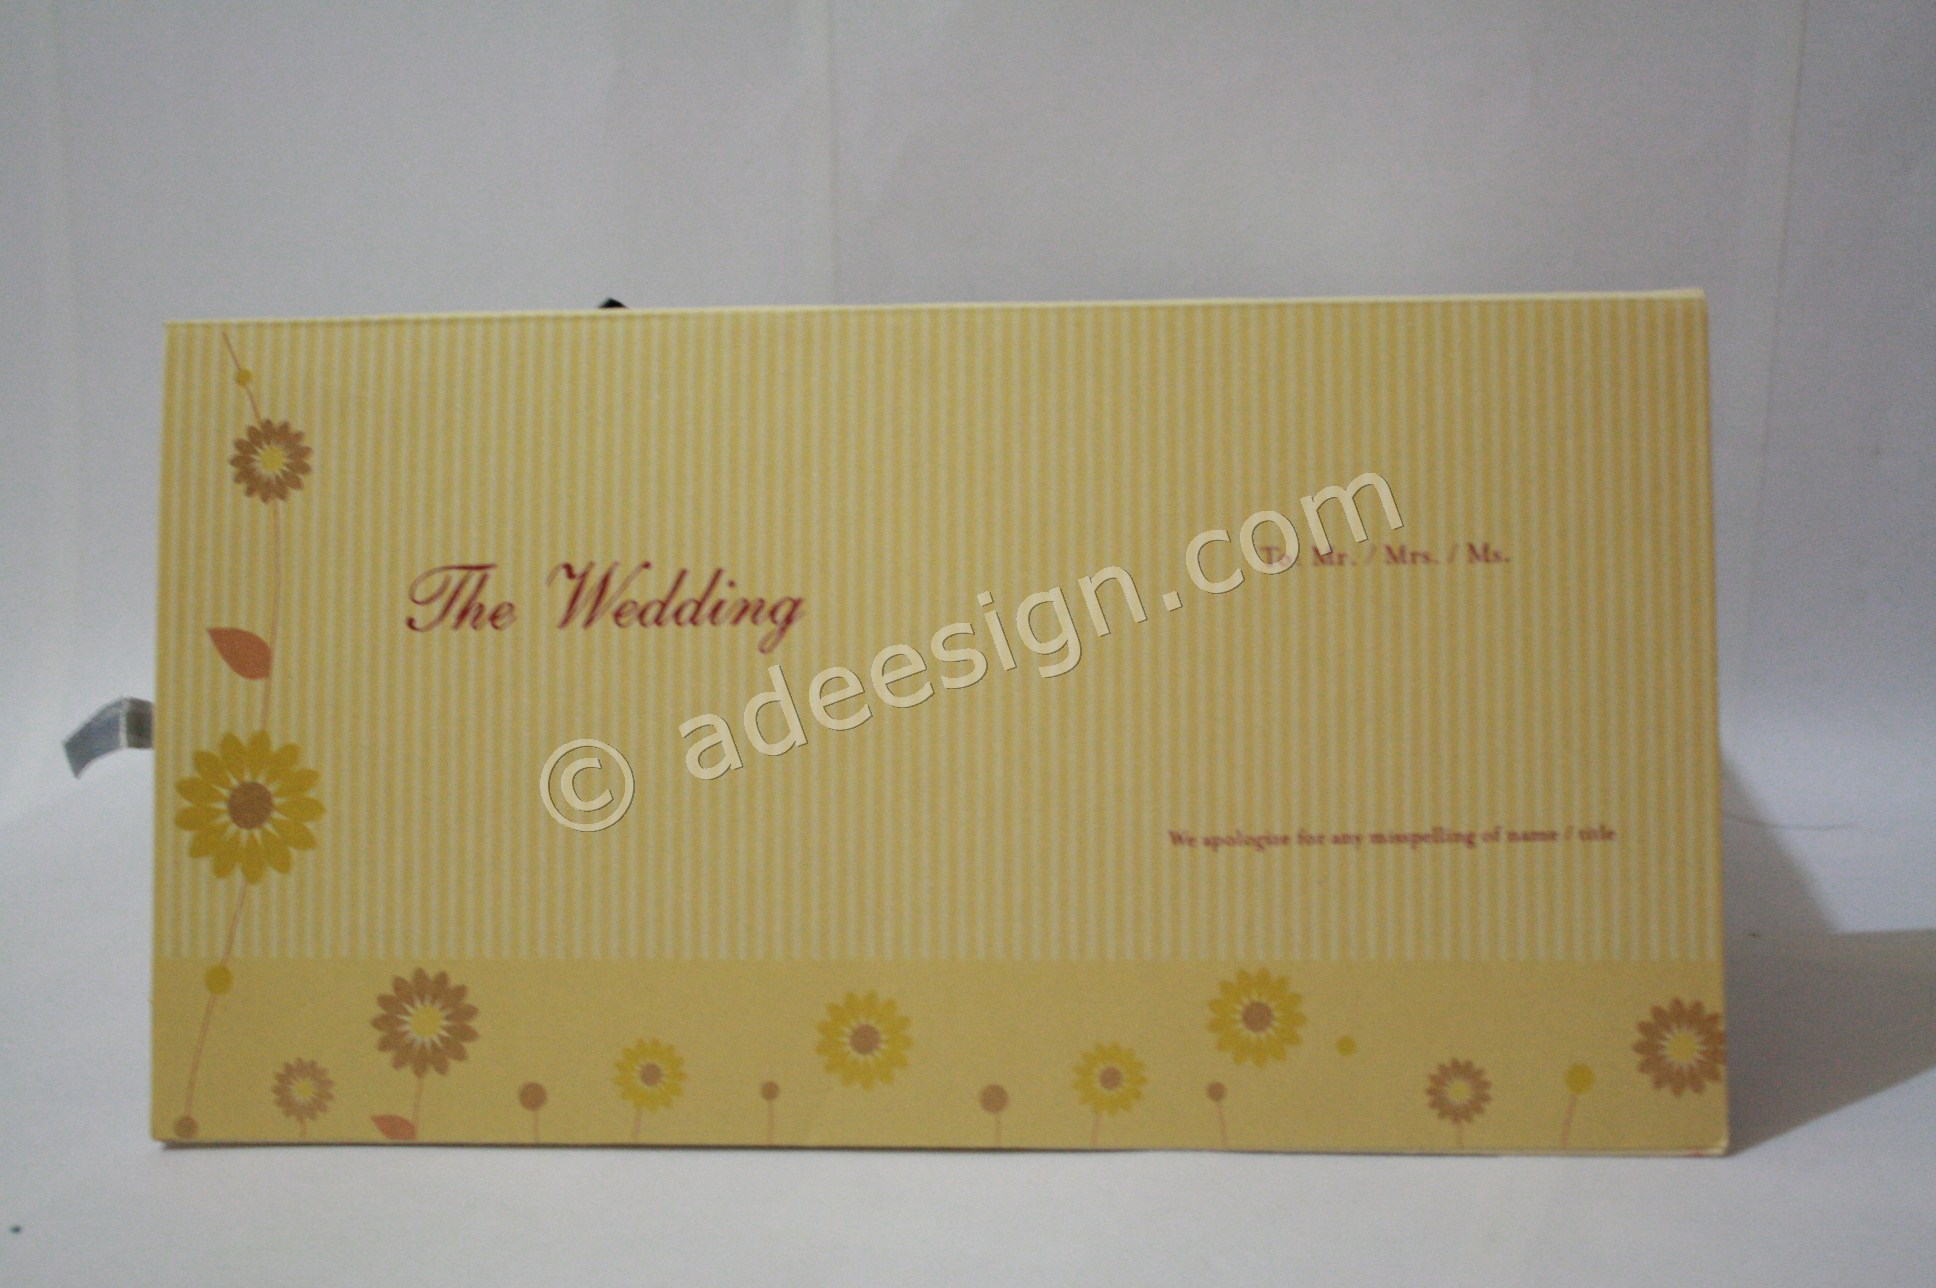 Undangan Pernikahan Hardcover ED69 3 - Percetakan Wedding Invitations Unik dan Simple di Dukuh Sutorejo